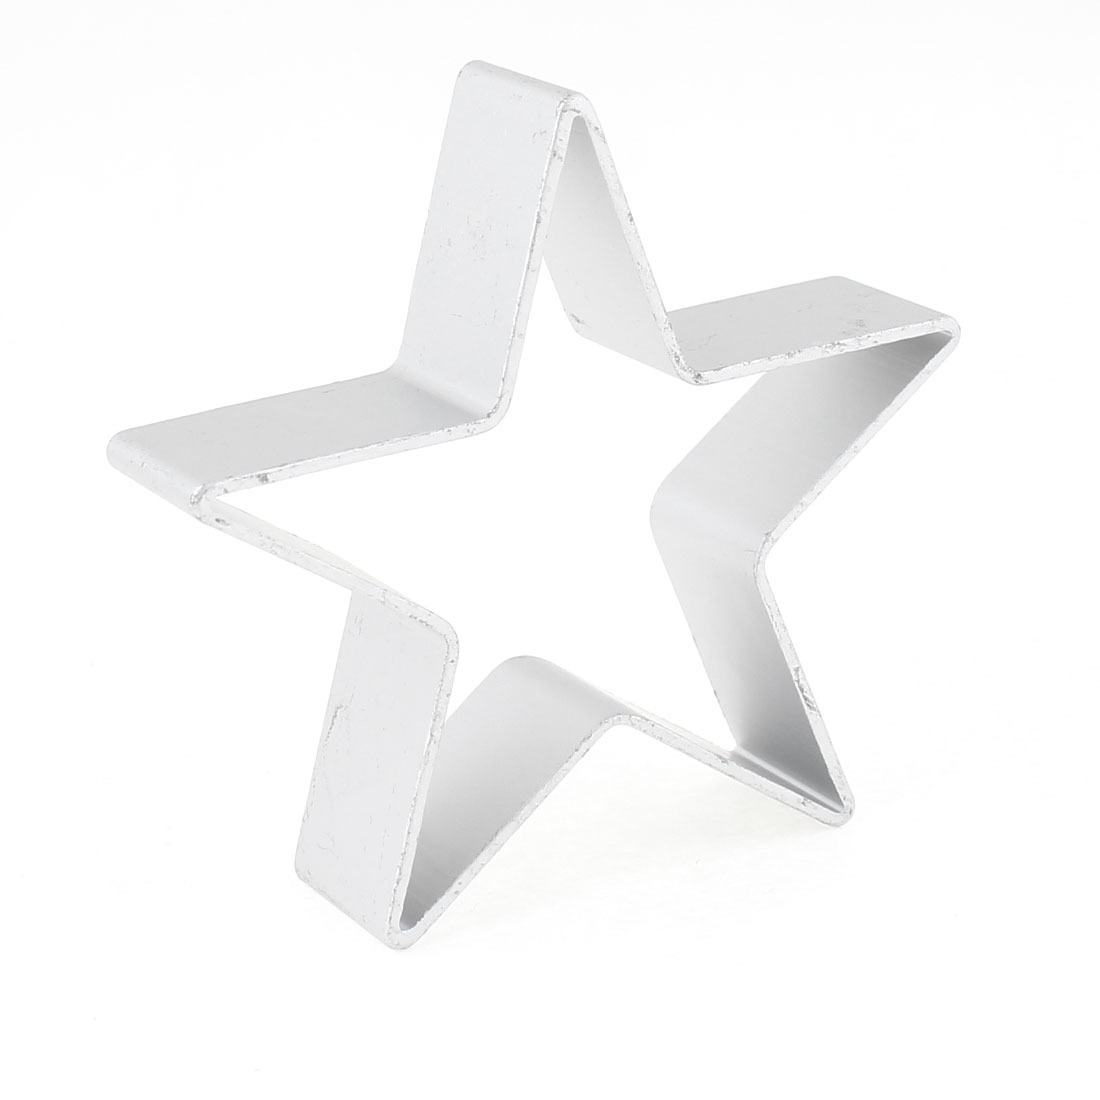 Kitchen DIY Cake Sandwich Toast Star Shape Metal Cutter Mold